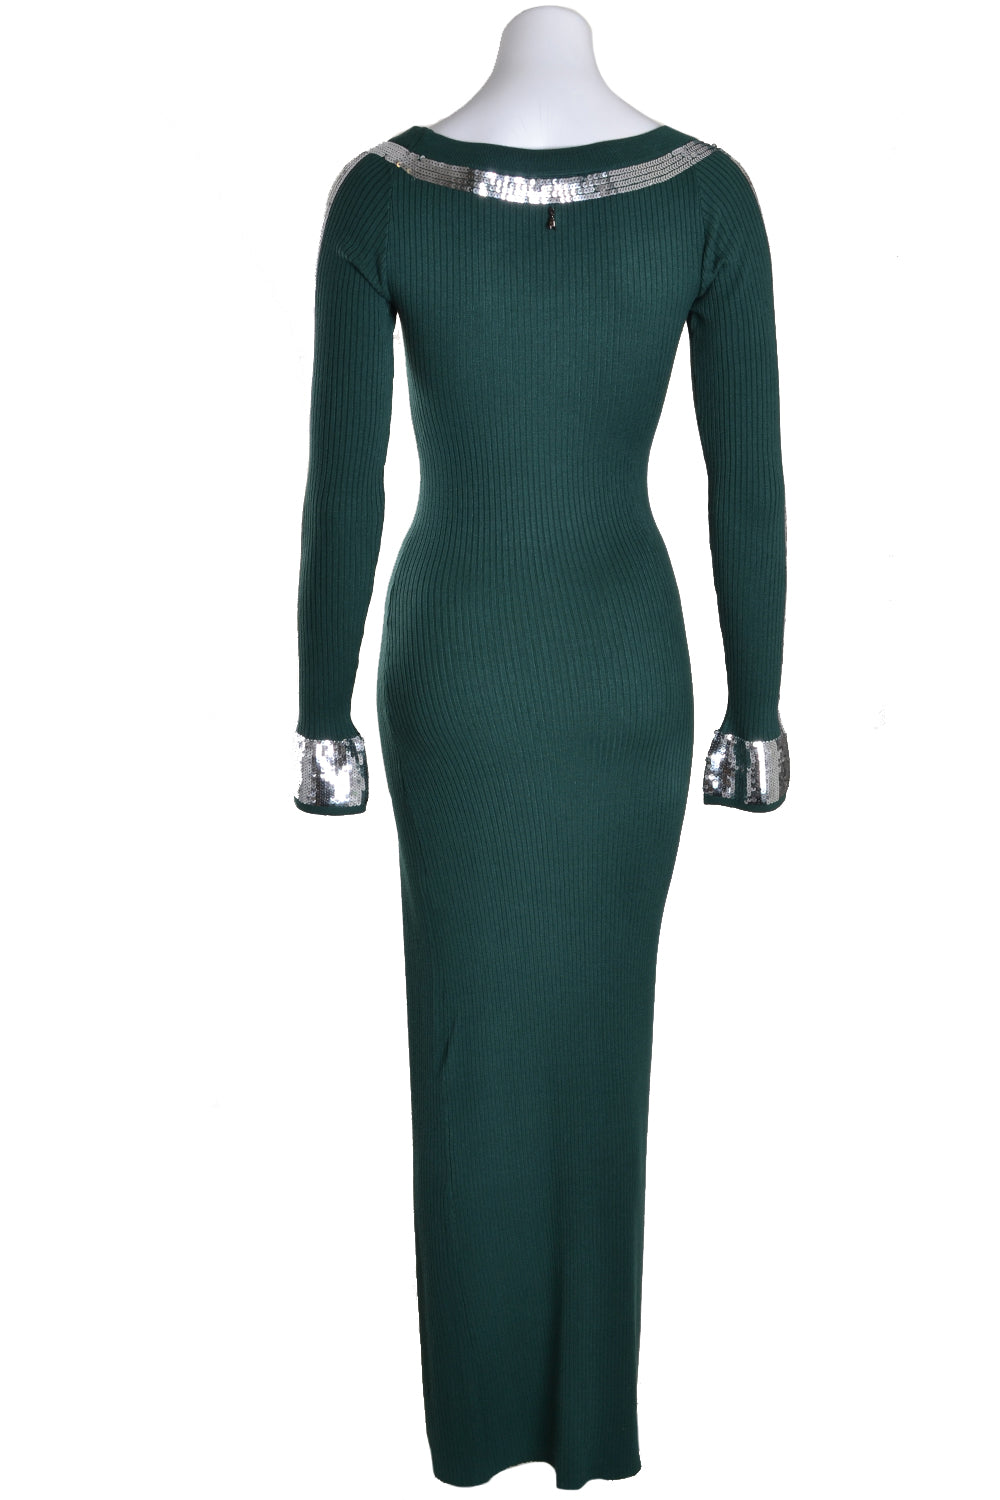 Patrizia Pepe Dress Long Rib Silver Sequin Green